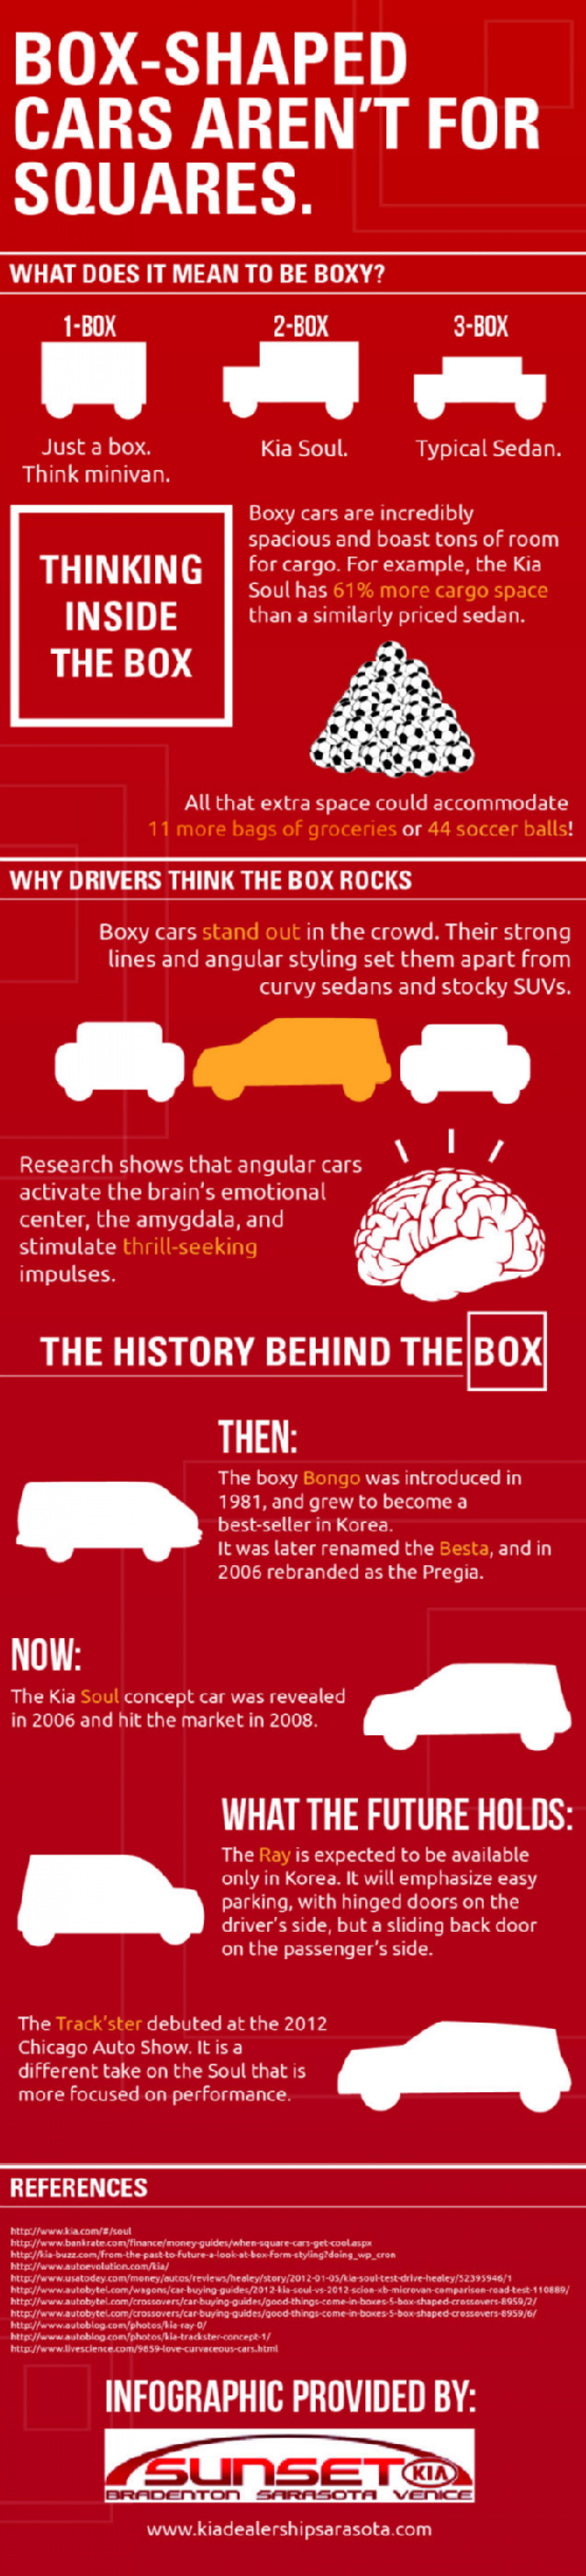 Box Shaped Cars Aren't For Squares Infographic